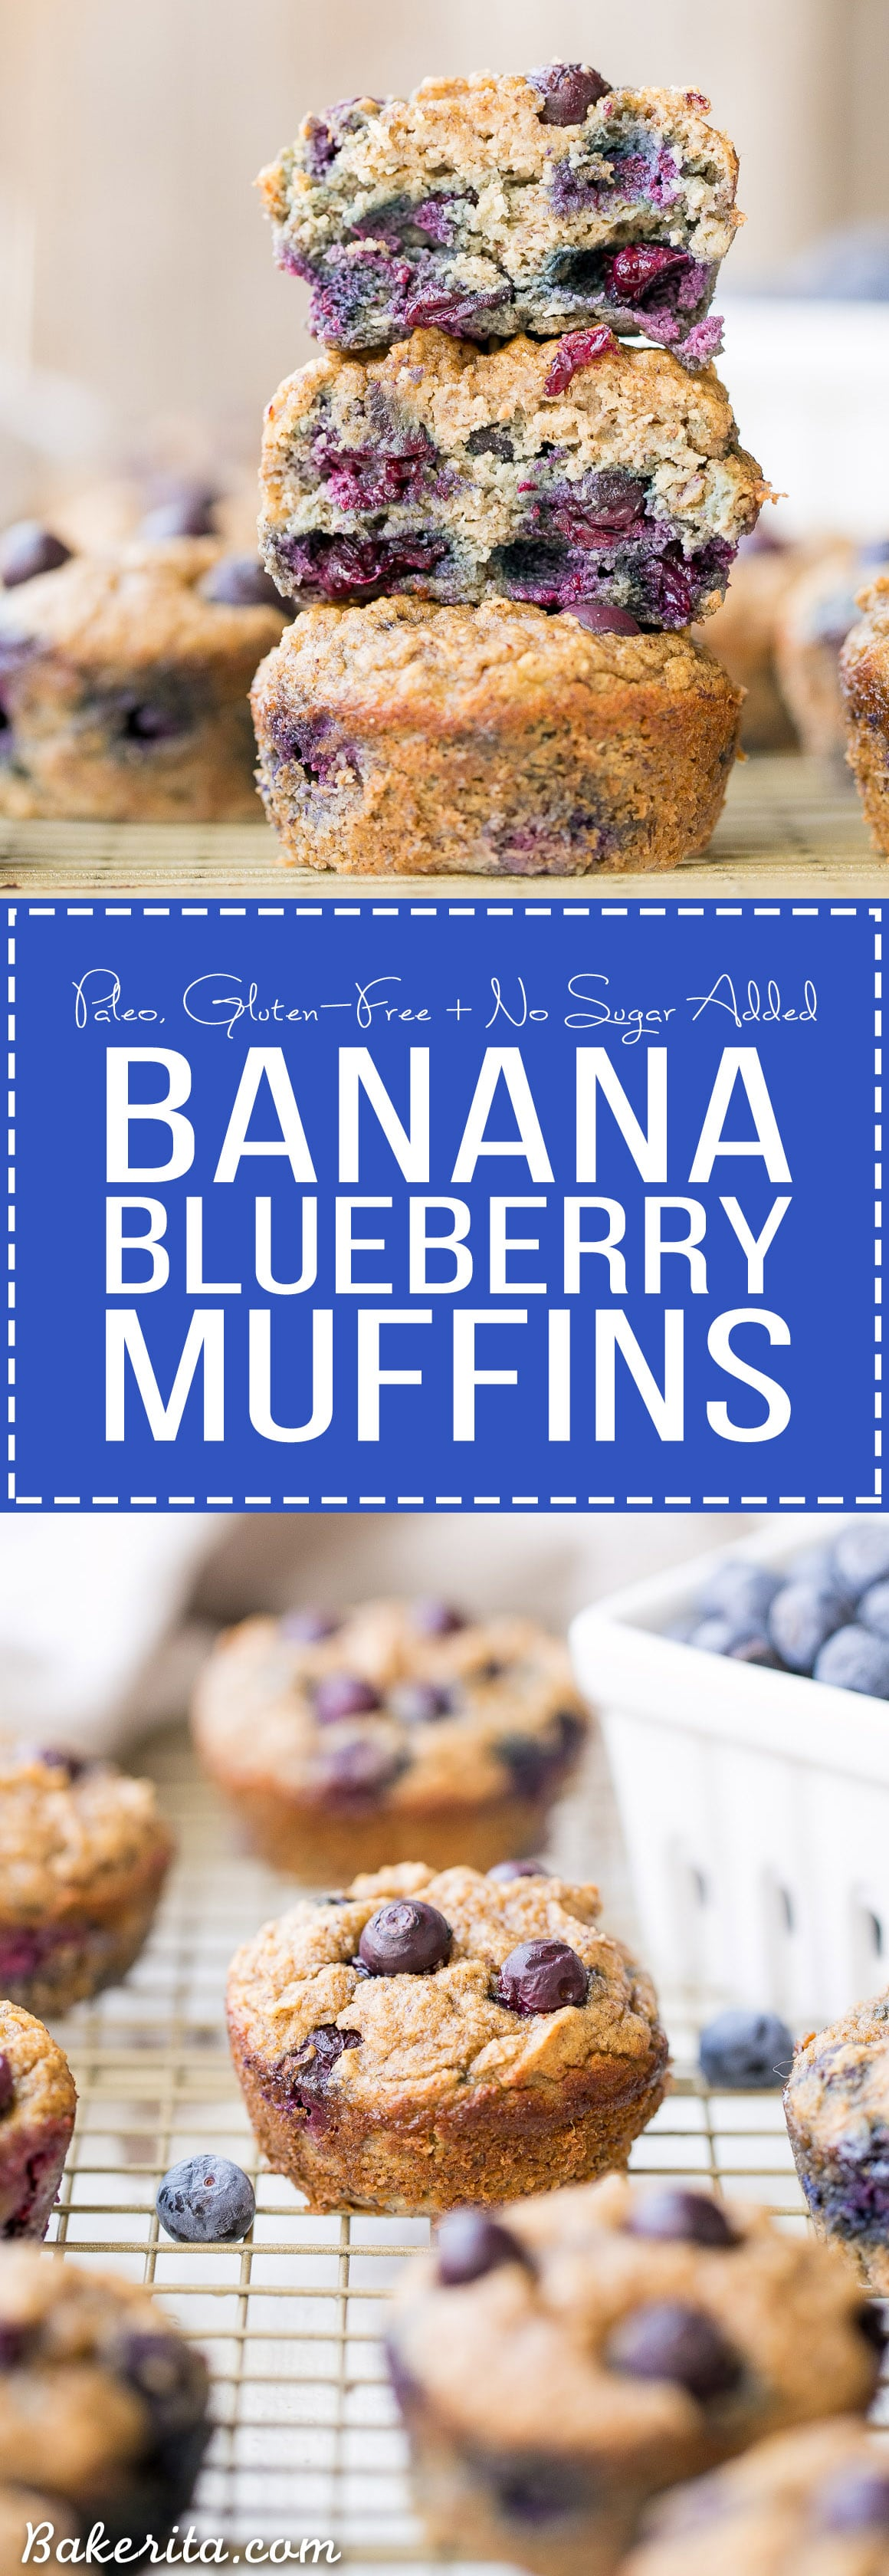 These Paleo Banana Blueberry Muffins are moist, sweet, and make the perfect quick snack or easy breakfast. They're gluten-free, grain-free and sweetened only with bananas - they also freeze super well, so they're great for meal prepping!